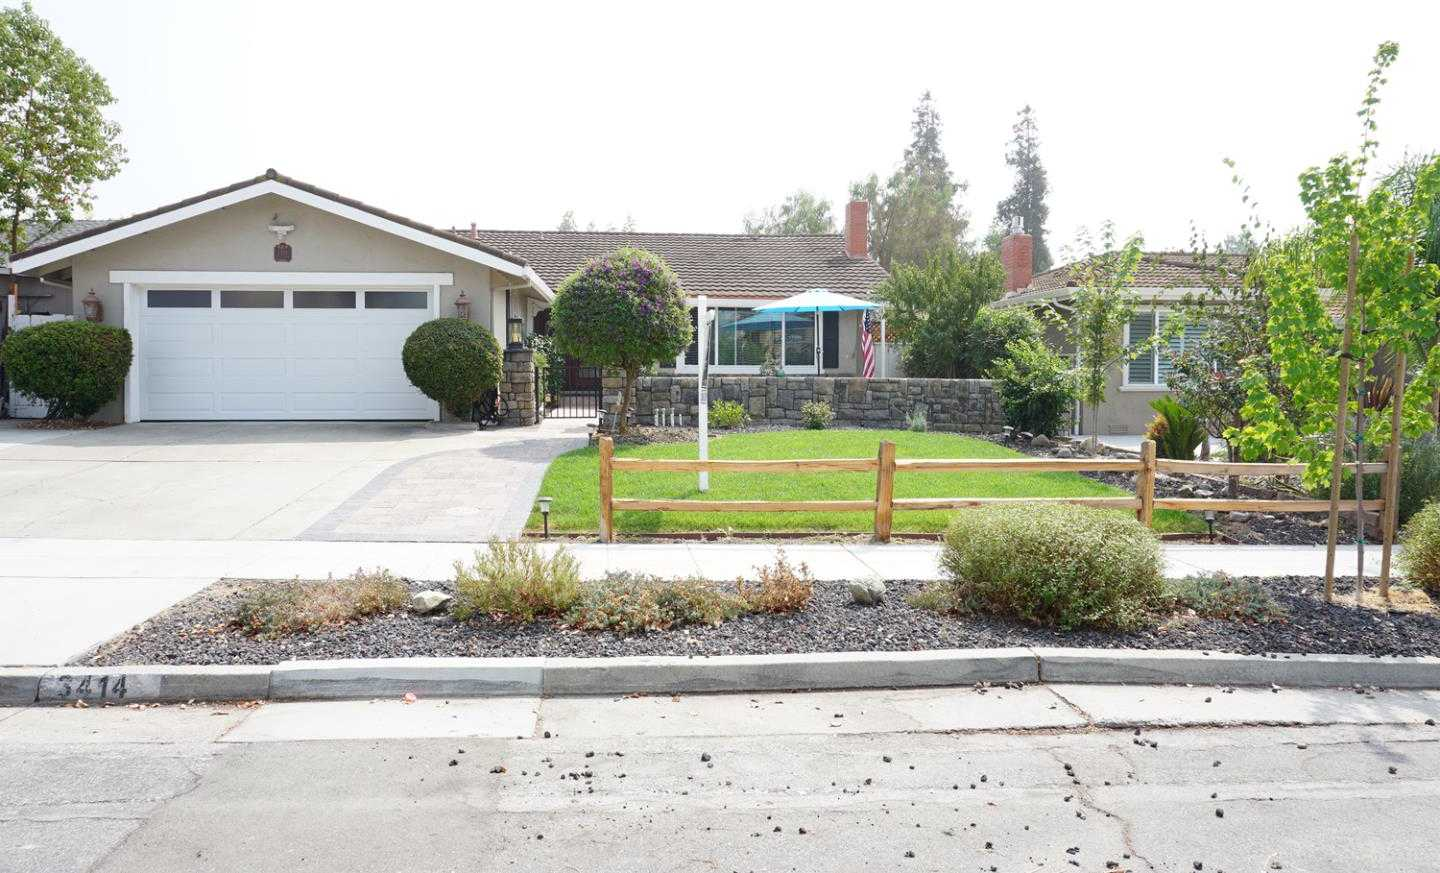 $998,500 - 3Br/2Ba -  for Sale in San Jose